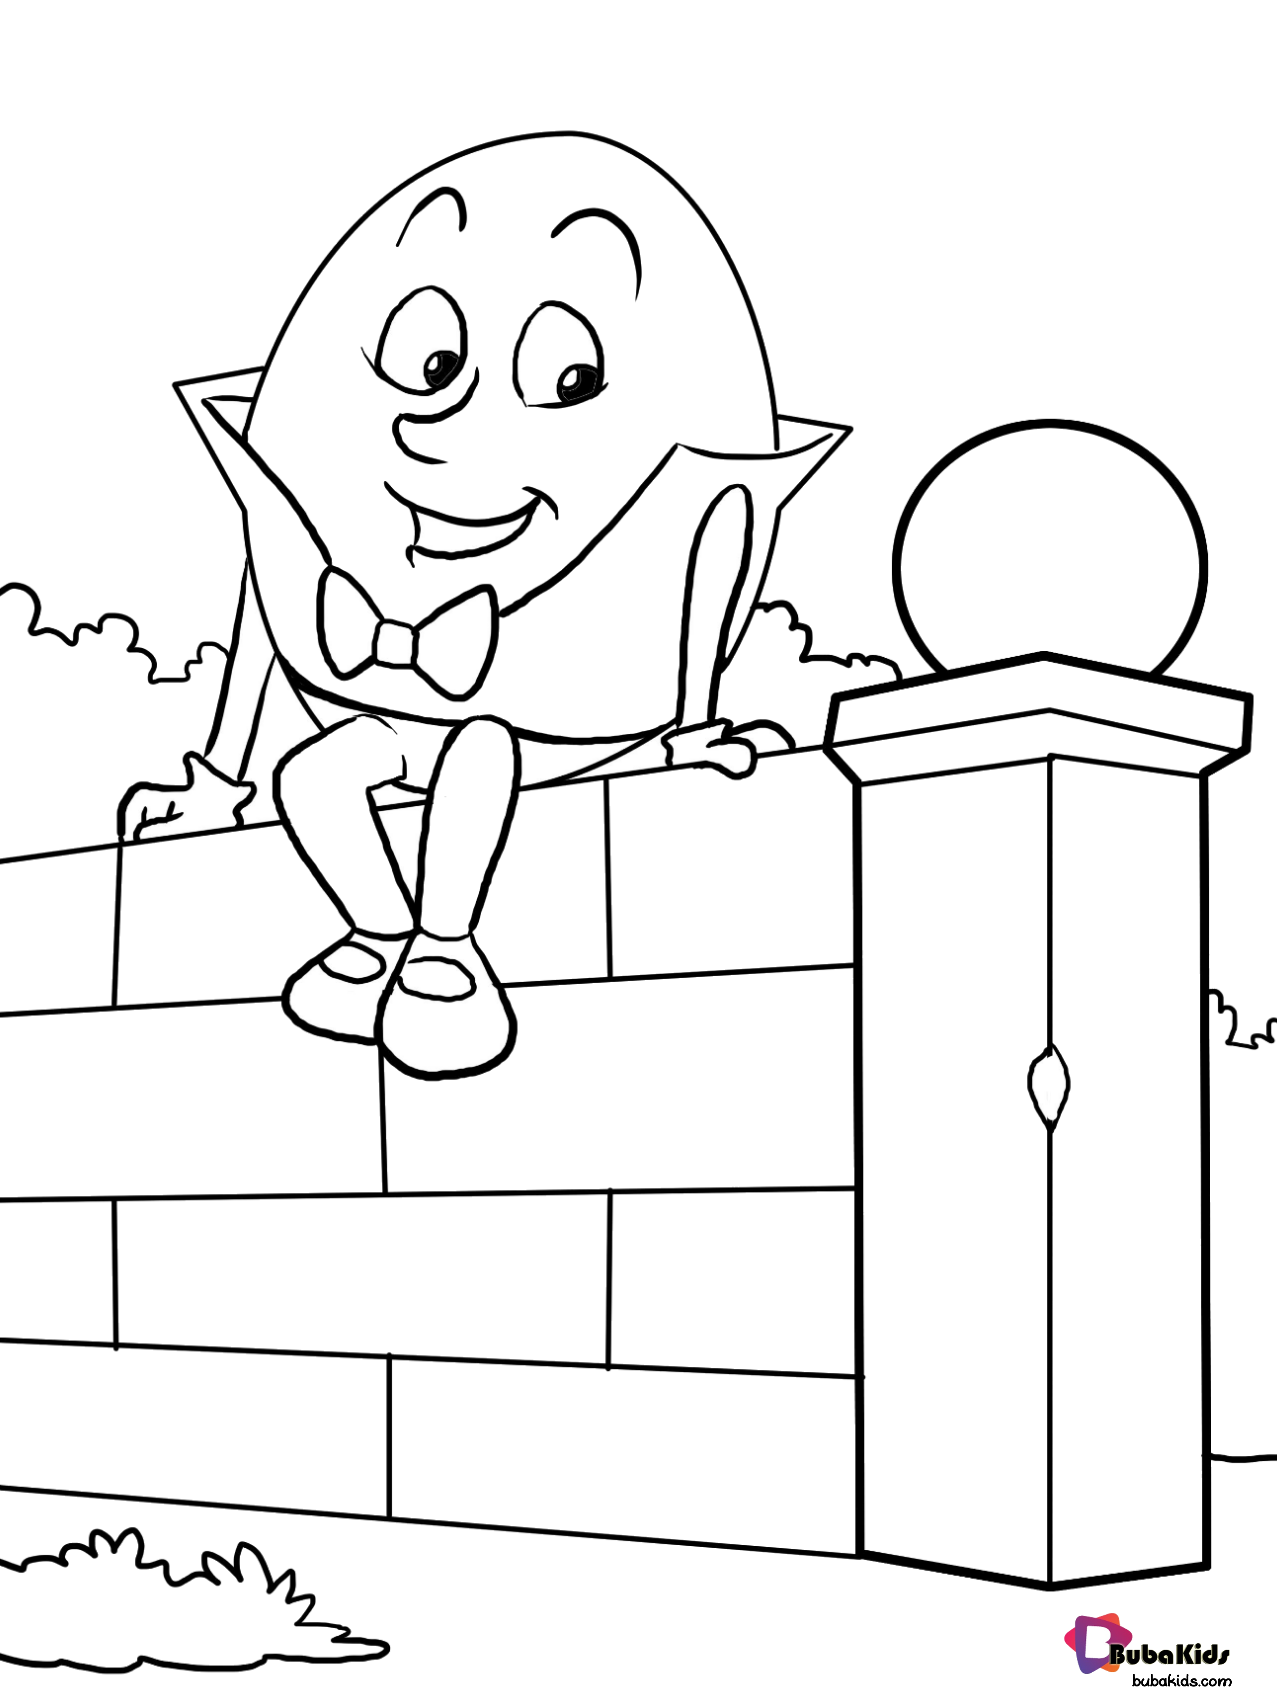 Humpty Dumpty Coloring Page Collection Of Cartoon Coloring Pages For Teenage Printable That You Can Download An Color Worksheets Coloring Books Coloring Pages